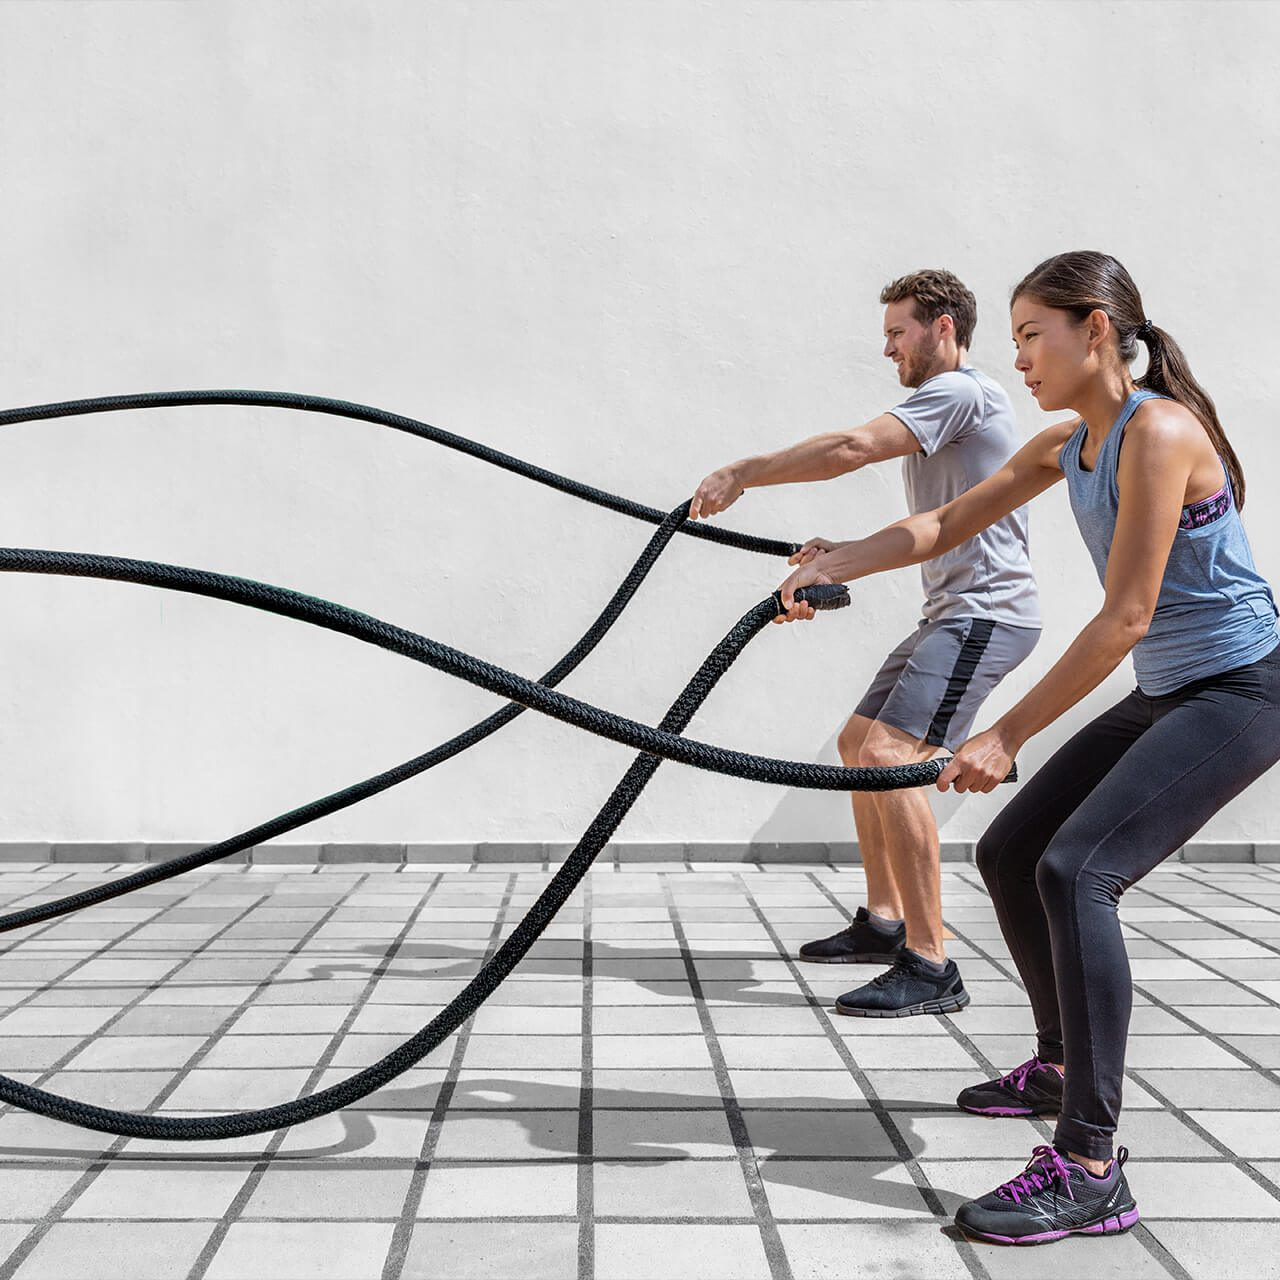 Fitness: Physical activity and health